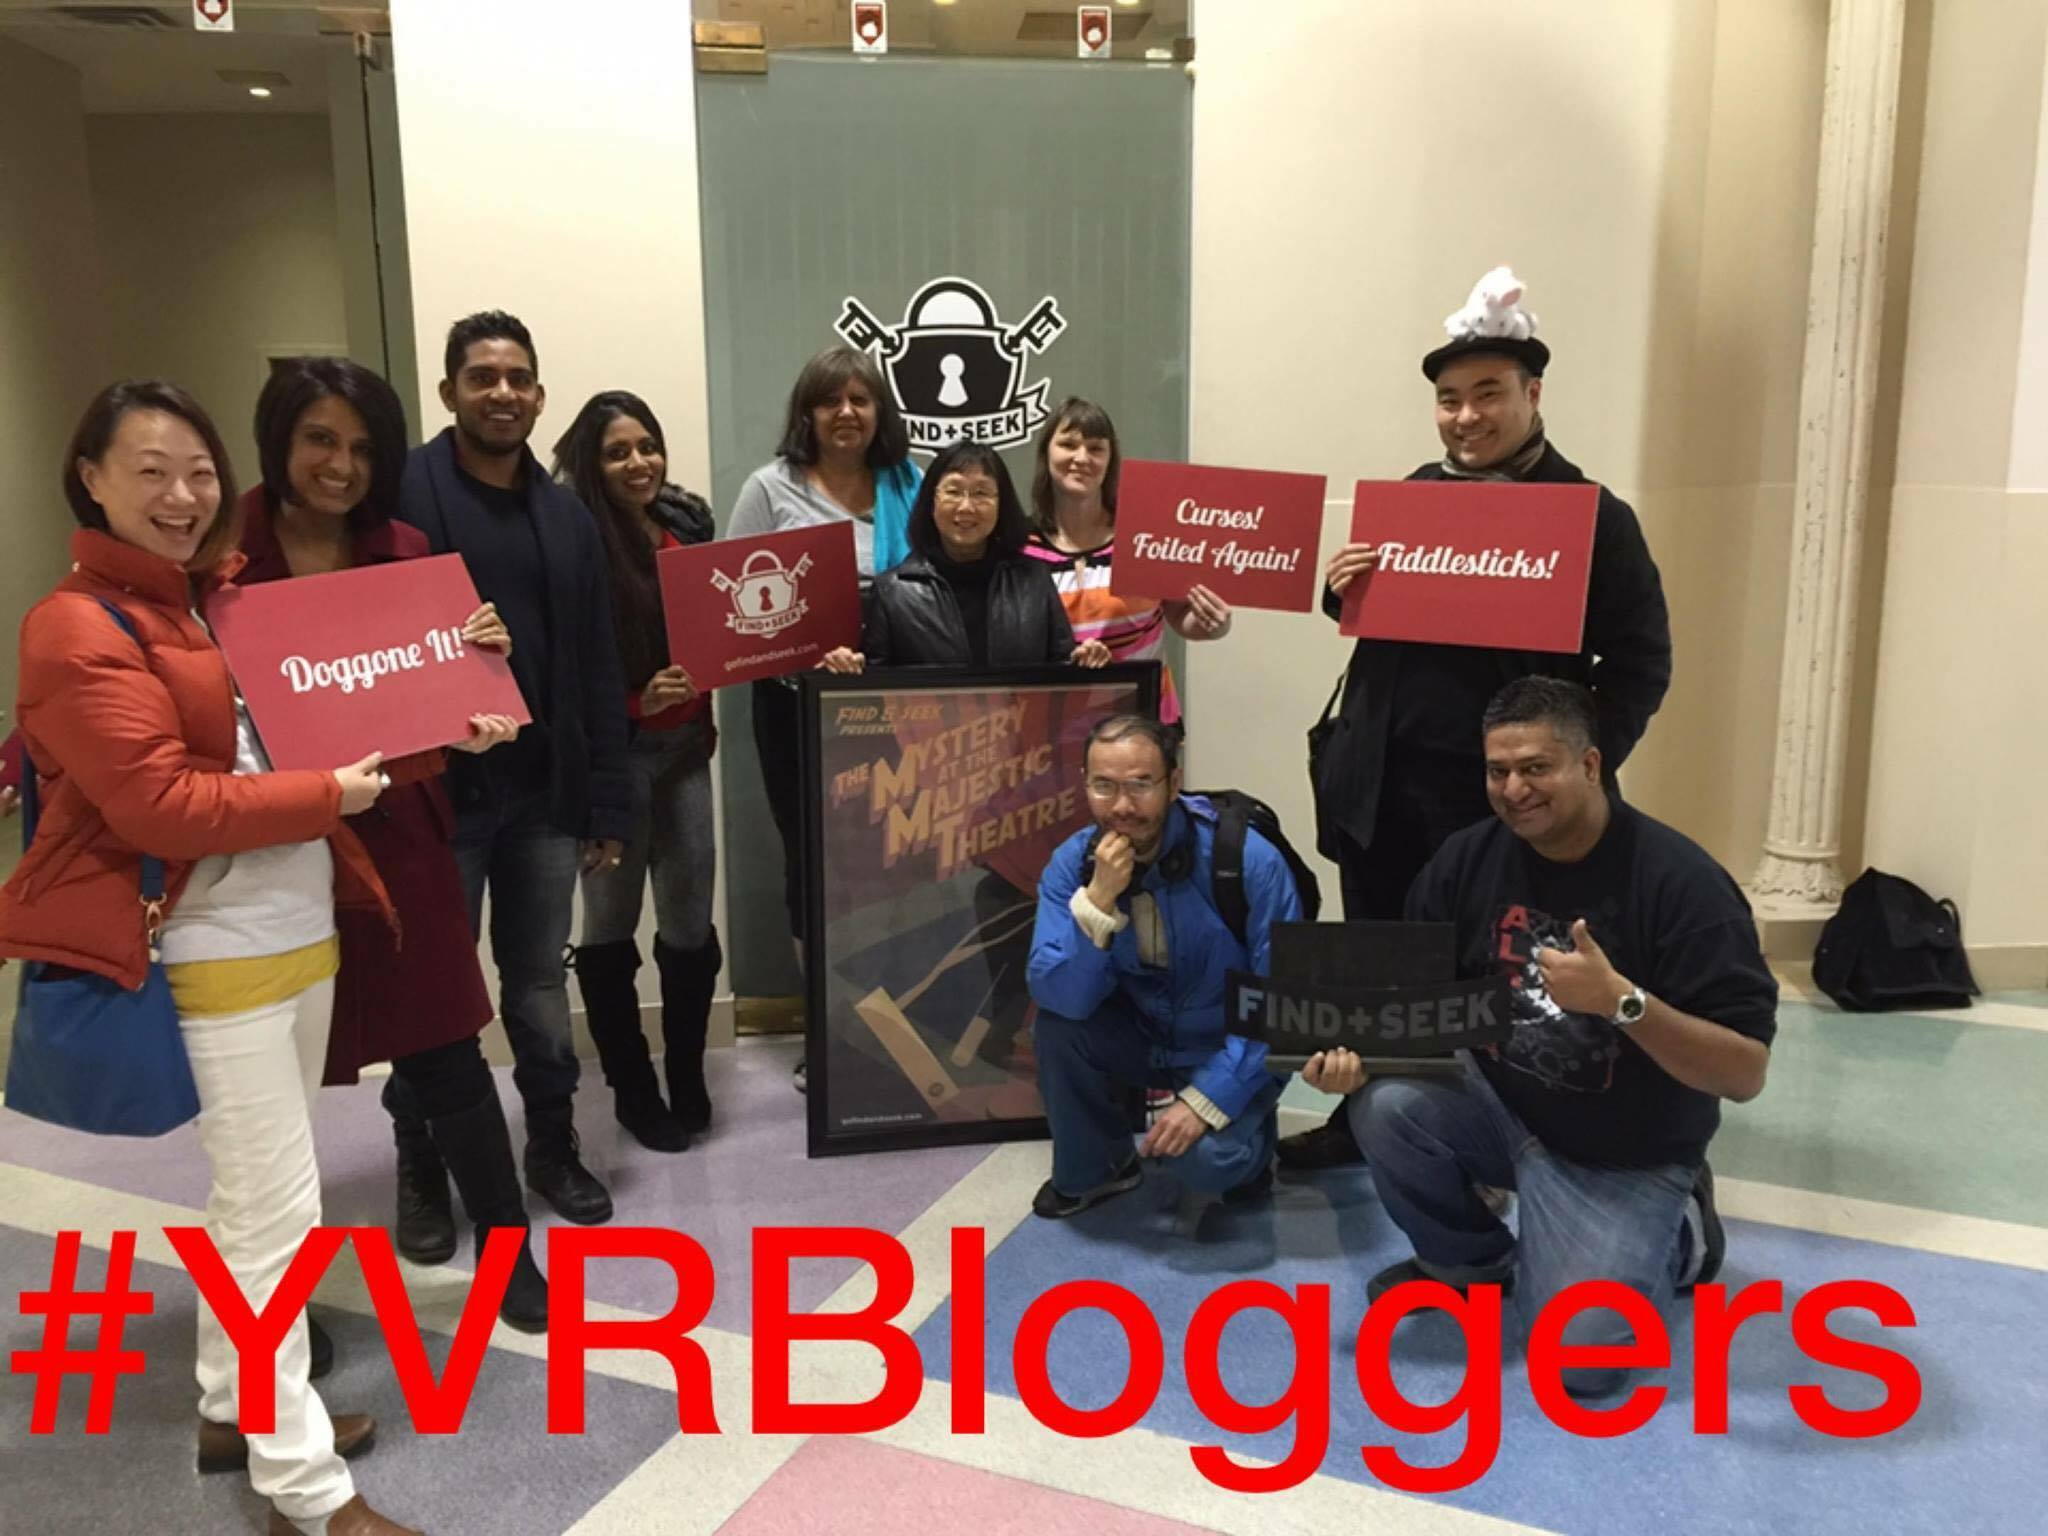 #YvrBloggers at FNS